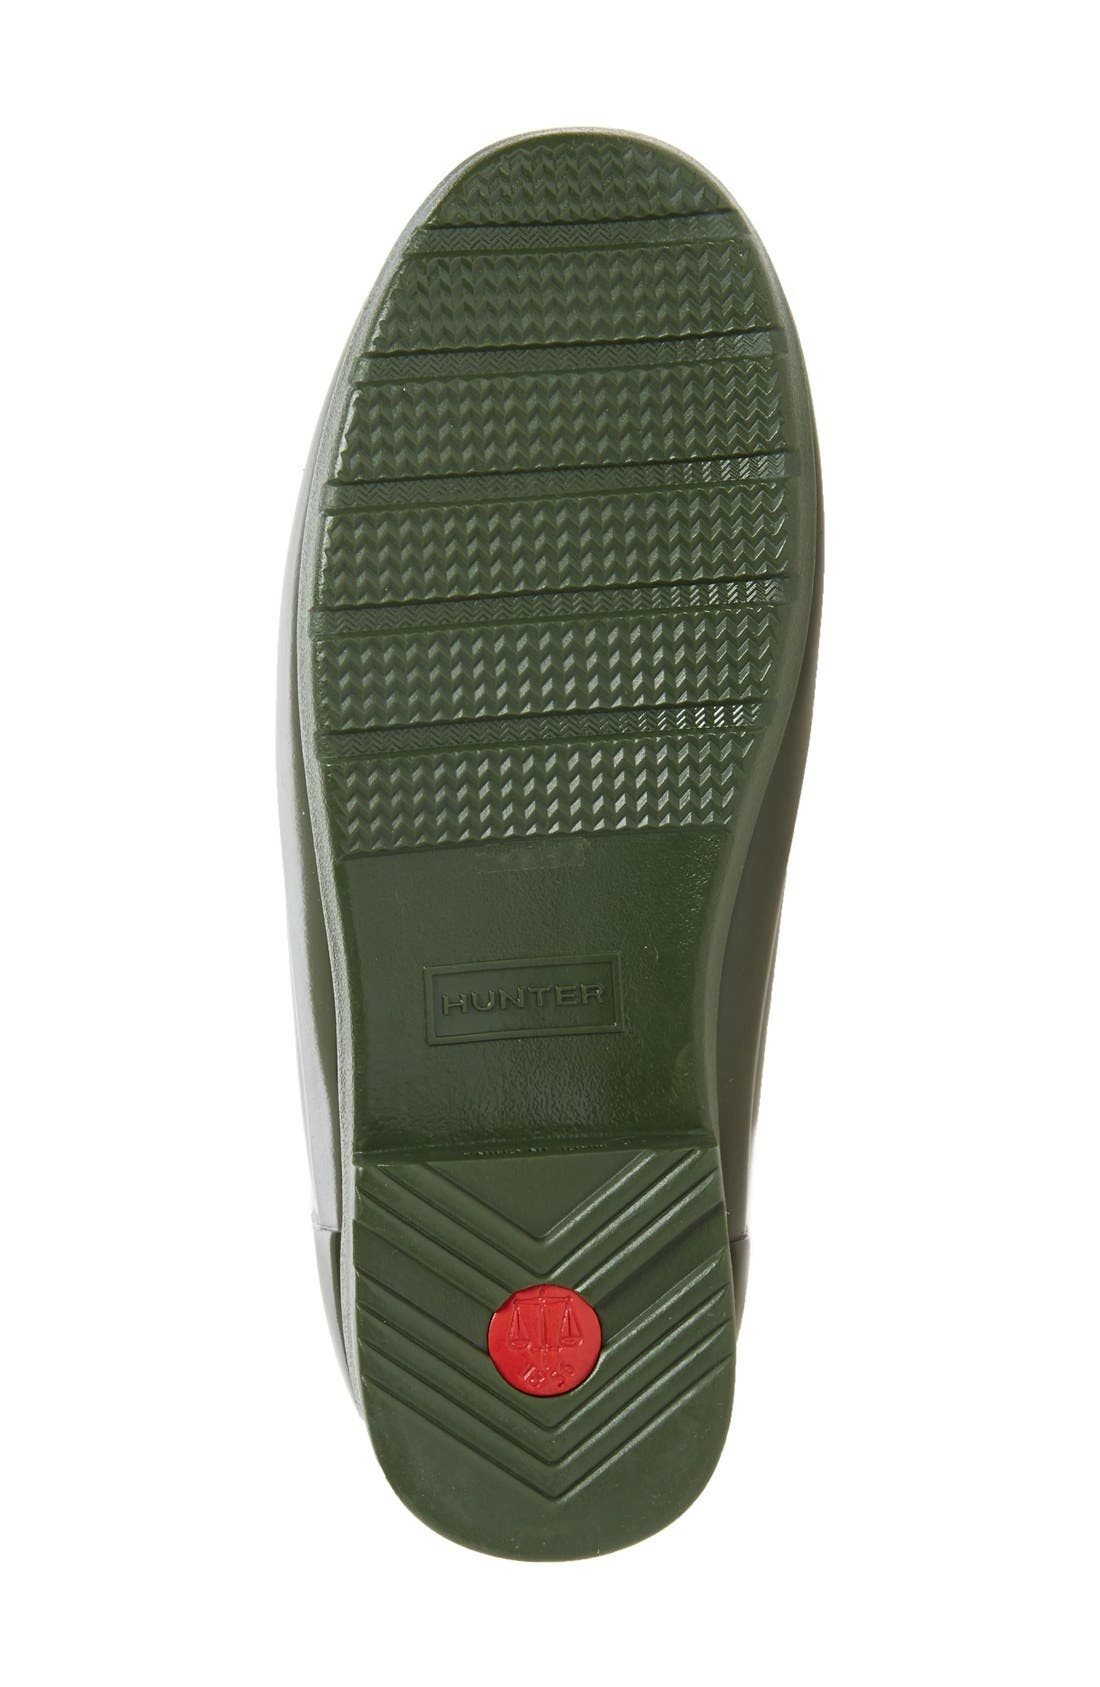 'Original Refined' High Gloss Rain Boot,                             Alternate thumbnail 6, color,                             Dark Olive